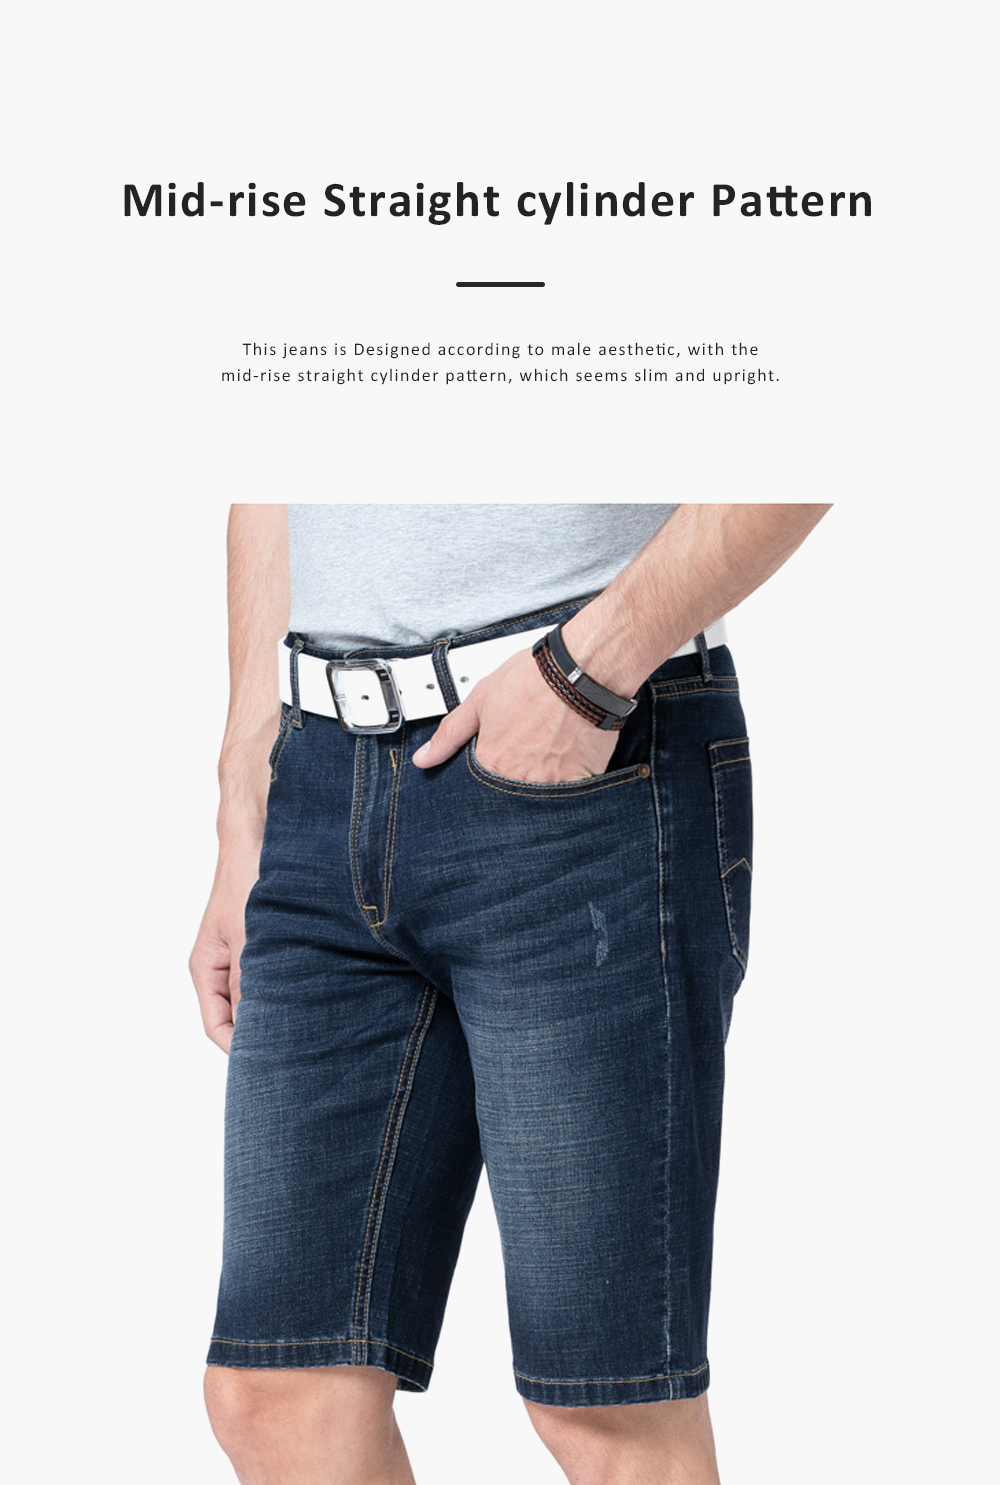 2019 New Leisure Style Loose Denim Shorts, Soft & Comfortable Thin Sports Mid-rise Jeans Pants 4